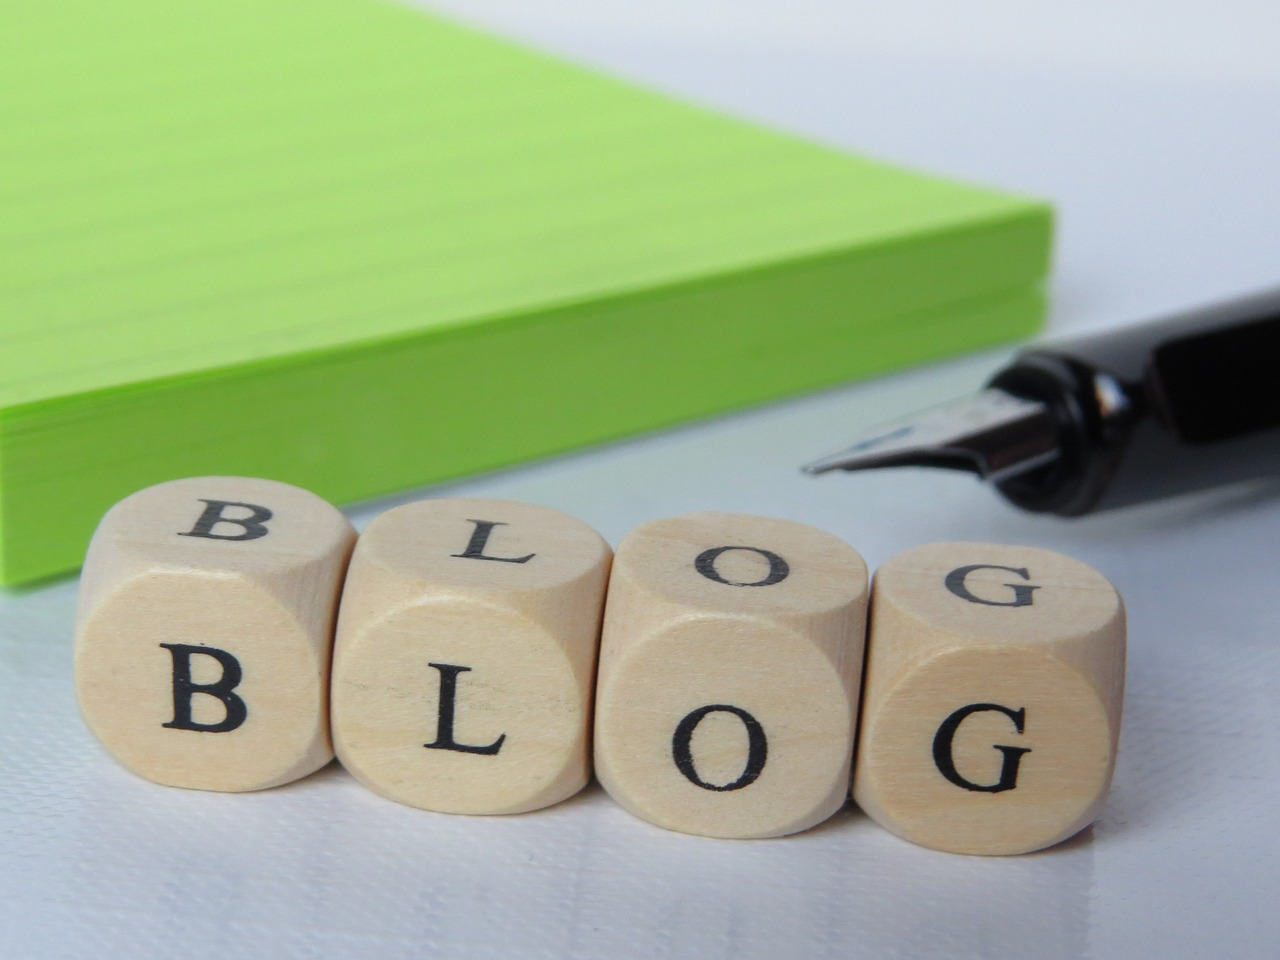 5 writer's blogs you should definitely read